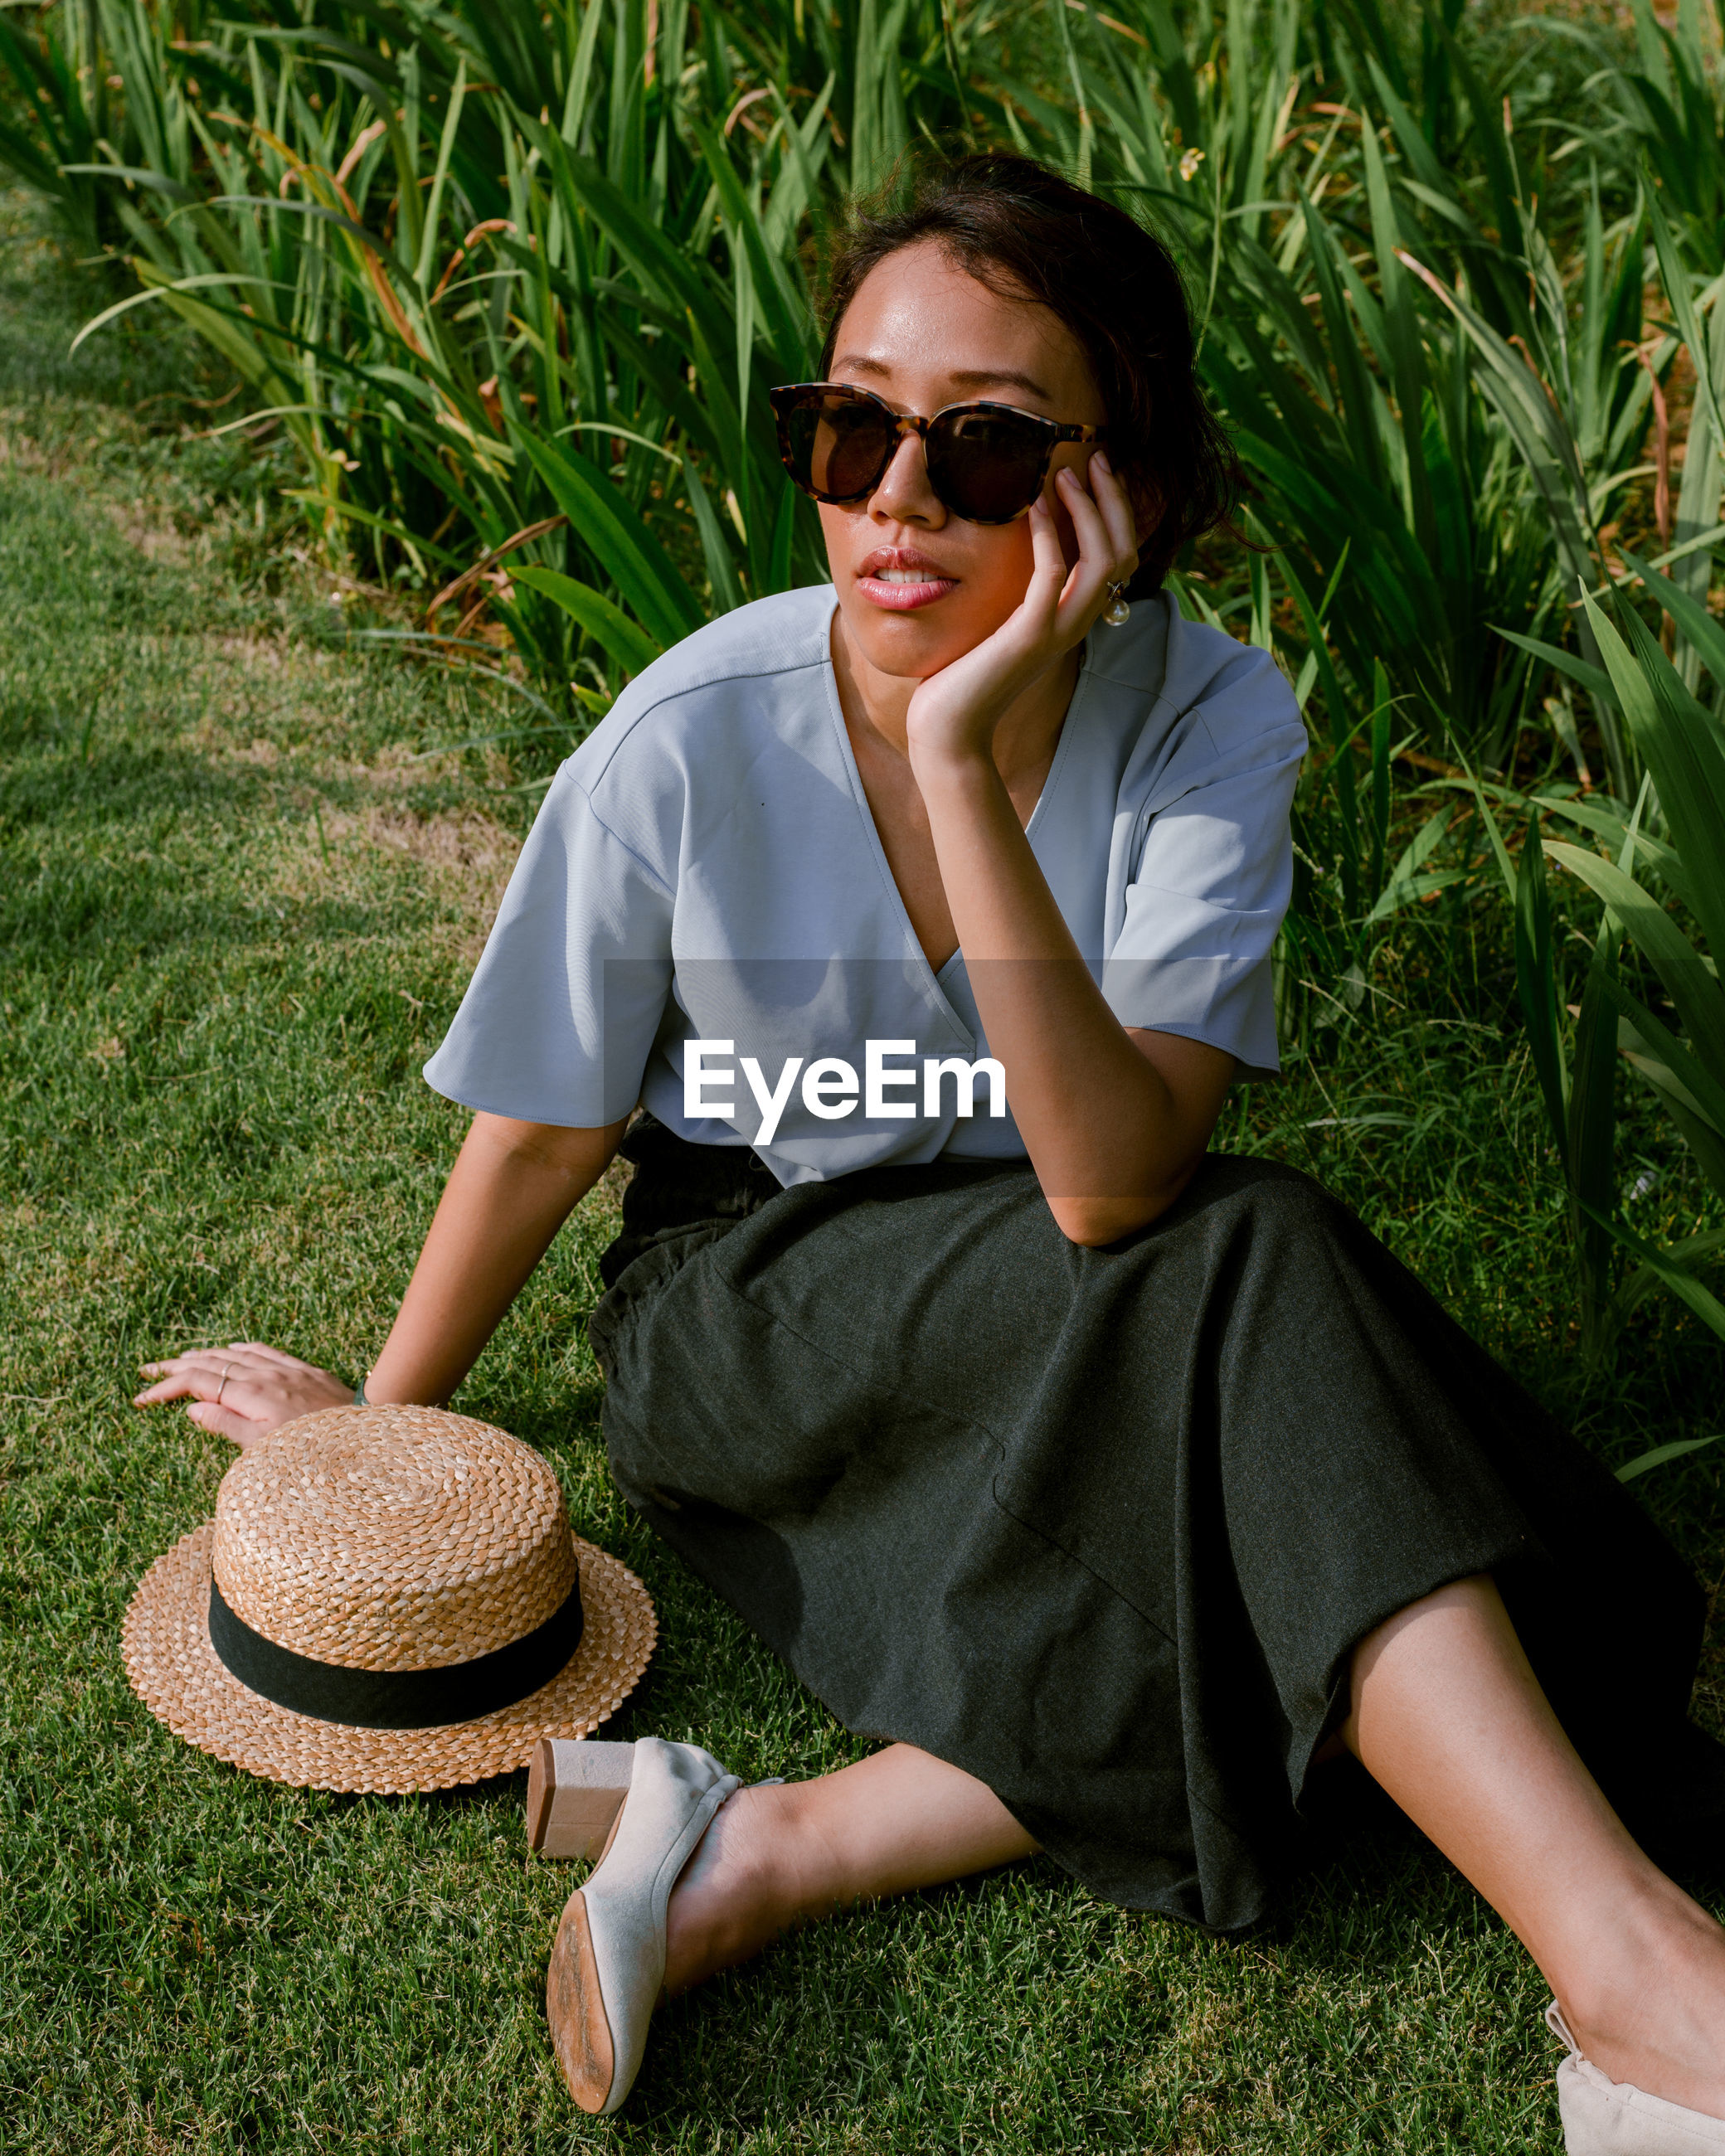 real people, leisure activity, sunglasses, glasses, grass, one person, plant, casual clothing, lifestyles, fashion, young adult, hat, sitting, nature, full length, day, front view, young women, outdoors